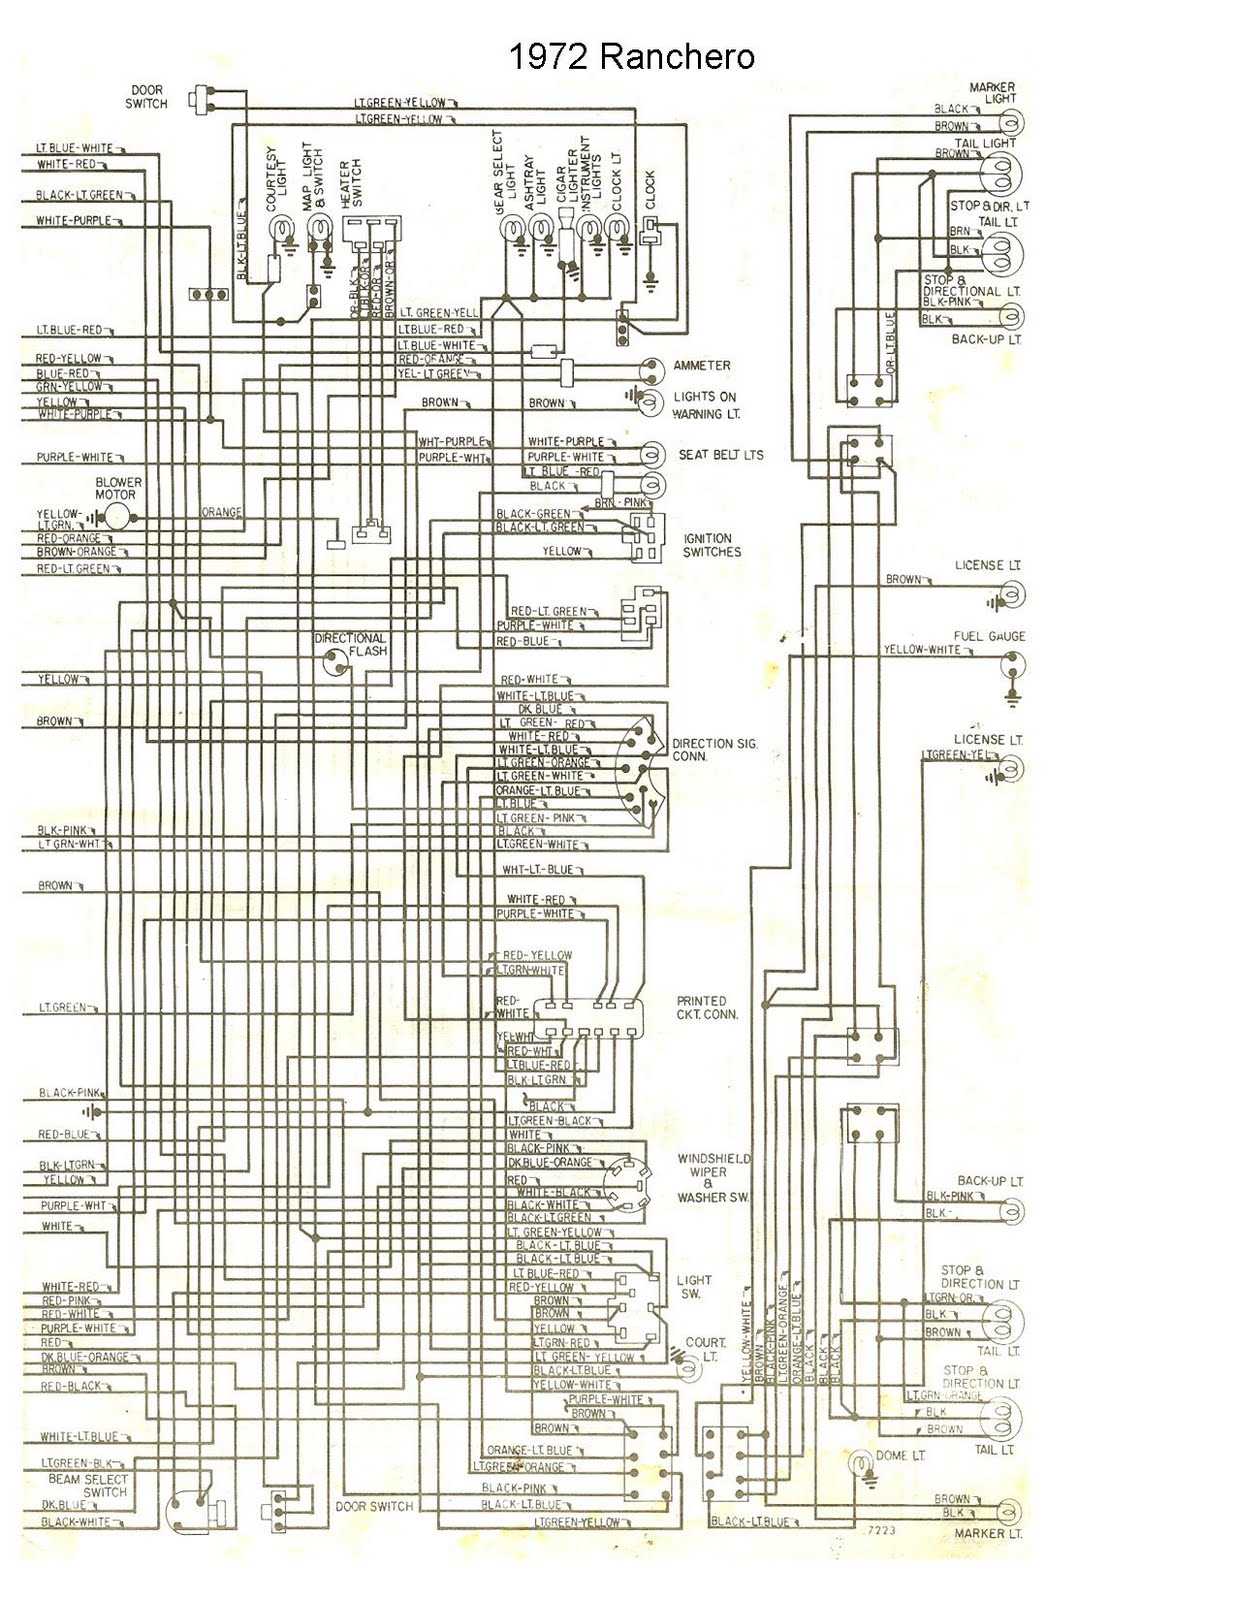 free auto wiring diagram: 1972 ford ranchero wiring diagram 1966 ranchero wiring diagram free download schematic toyota mr2 wiring diagram free download schematic